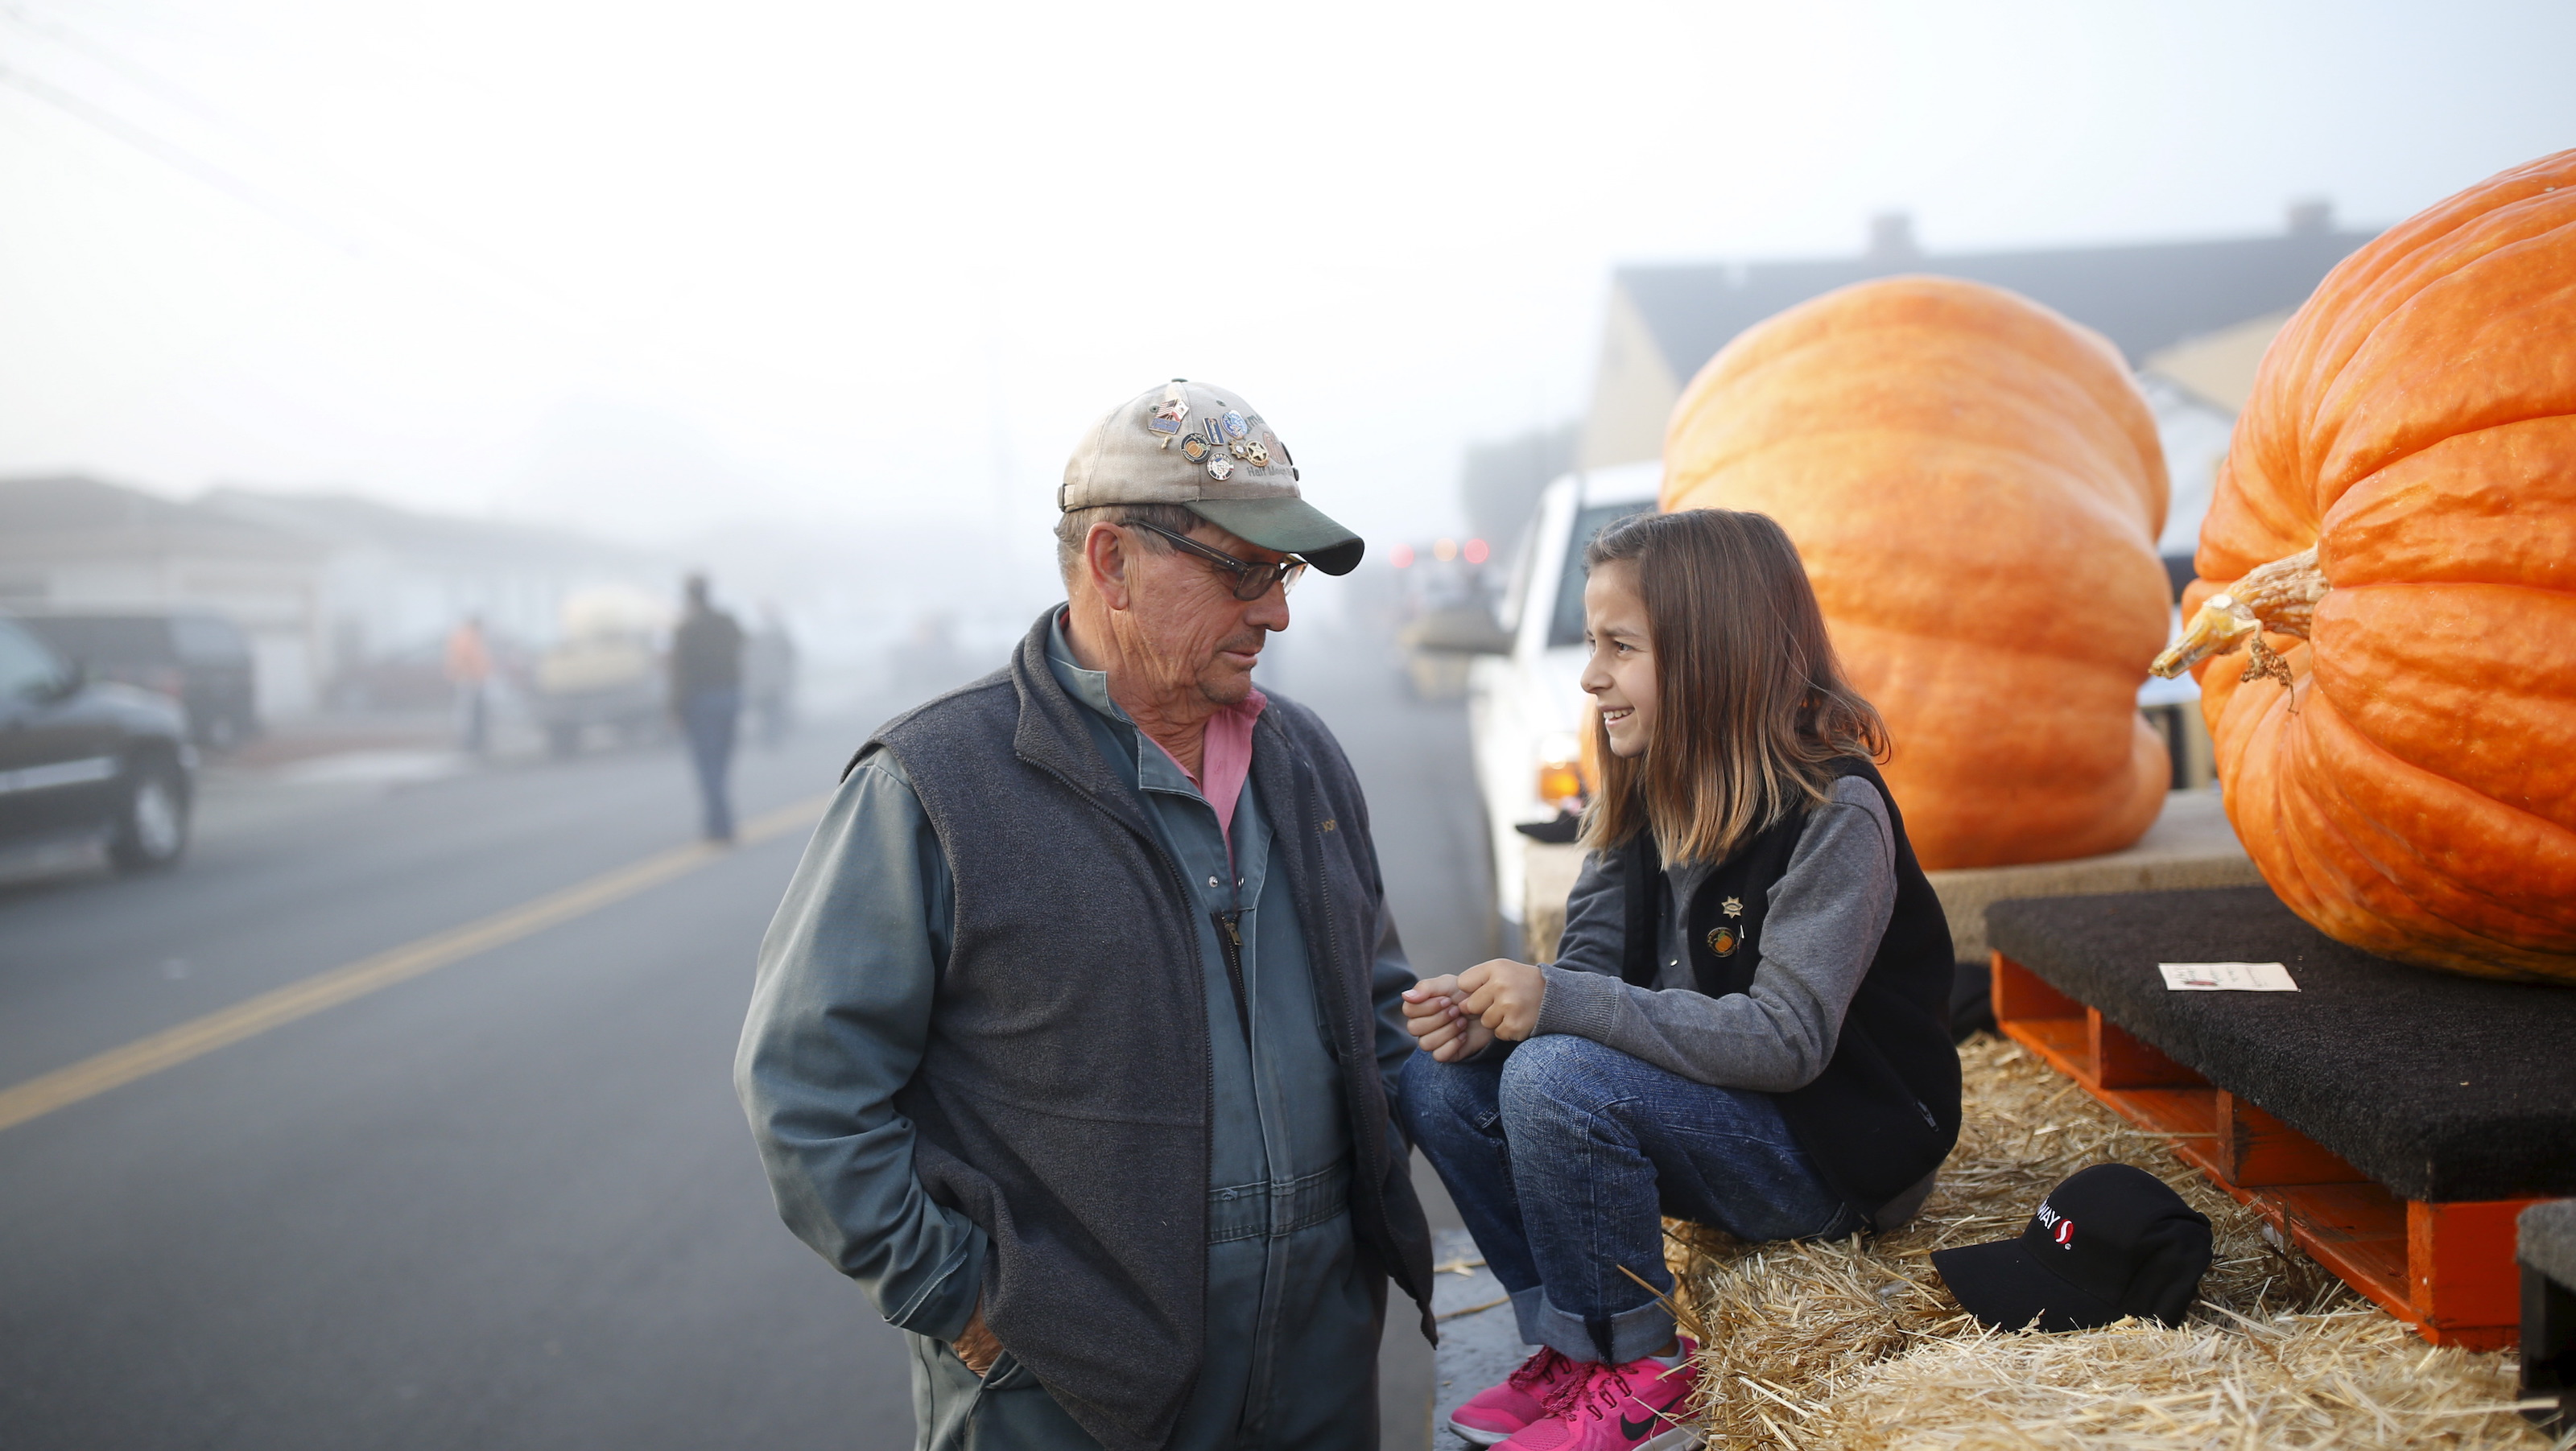 Farmer John (L) speaks with his granddaughter Delfina Bianchi, 7, as they wait next to their pumpkins during the annual Safeway World Championship Pumpkin Weigh-off in Half Moon Bay, California October 12, 2015. REUTERS/Stephen Lam - RTS44O6